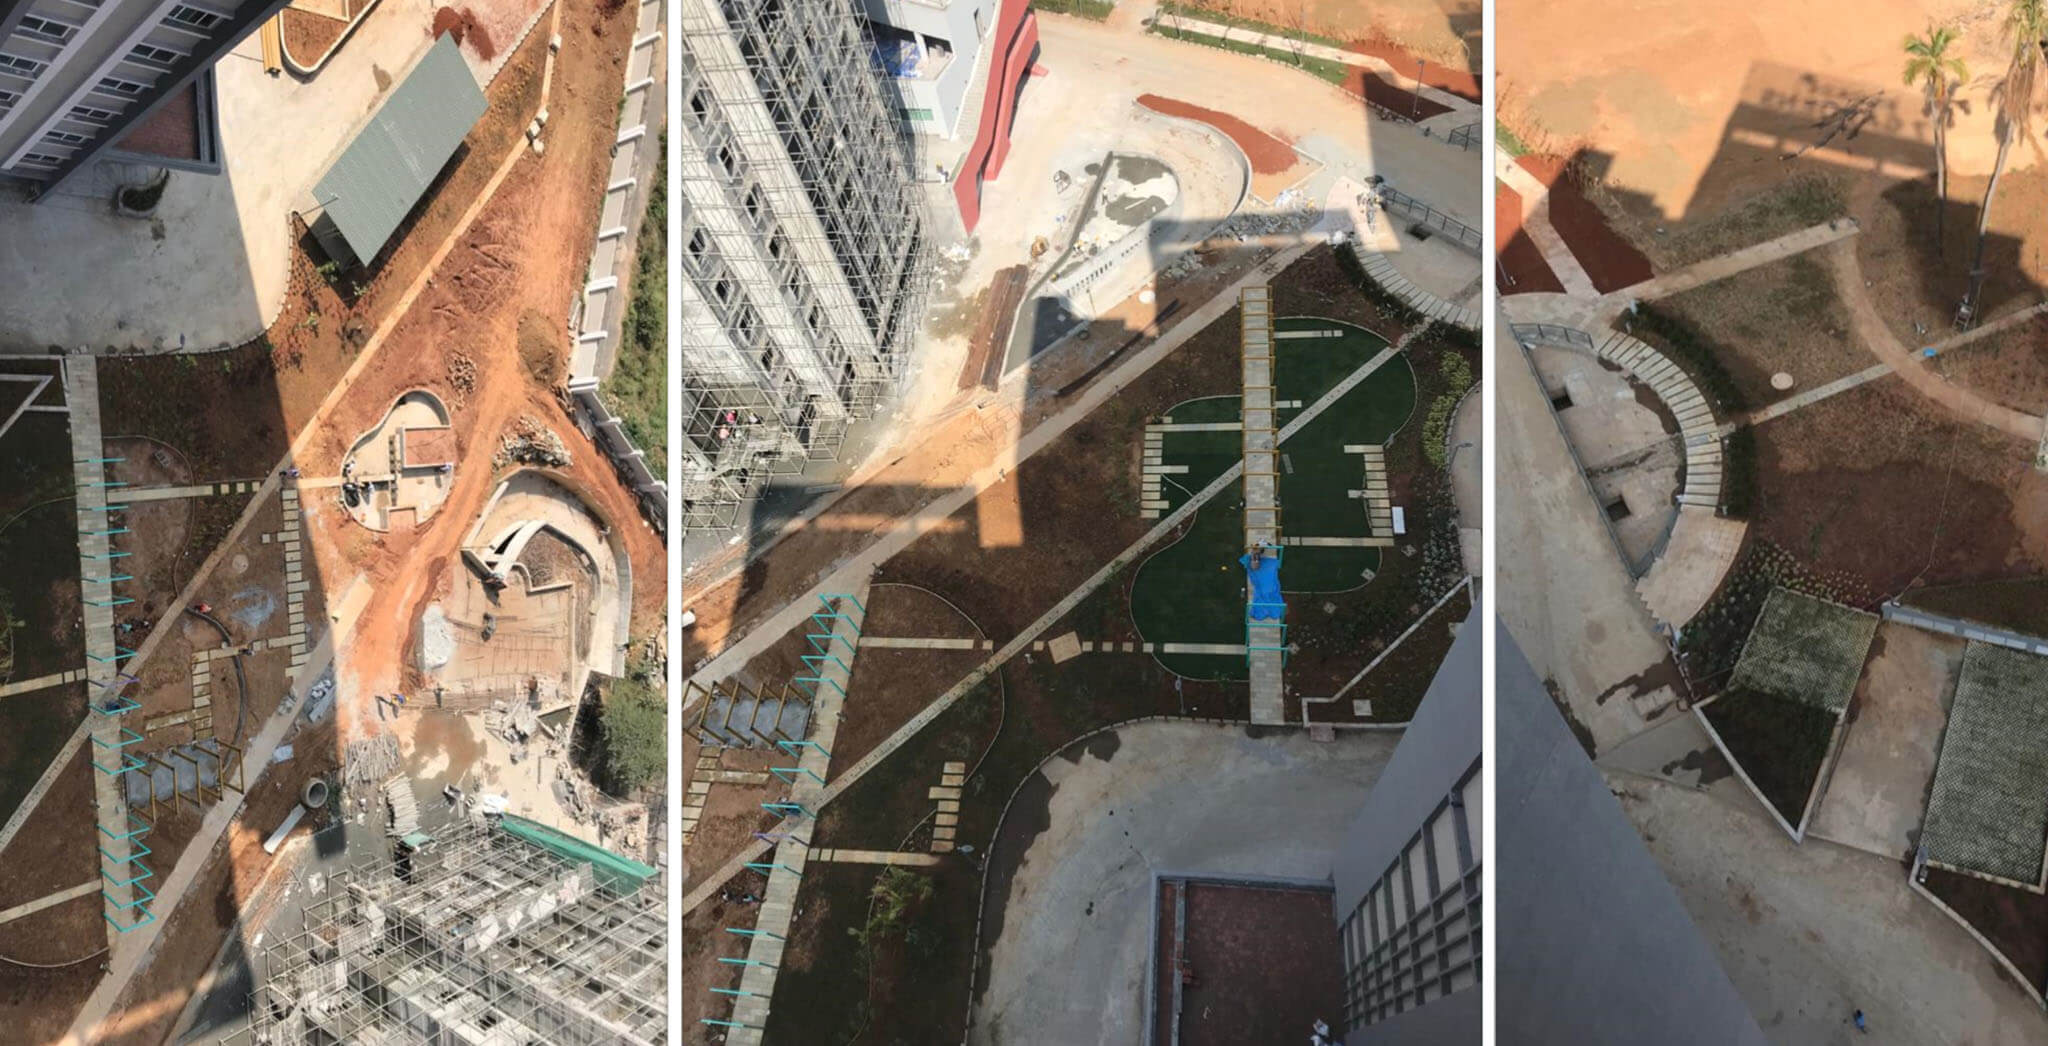 Jan 2021 - Landscaping between A, B, C, and D towers in progress